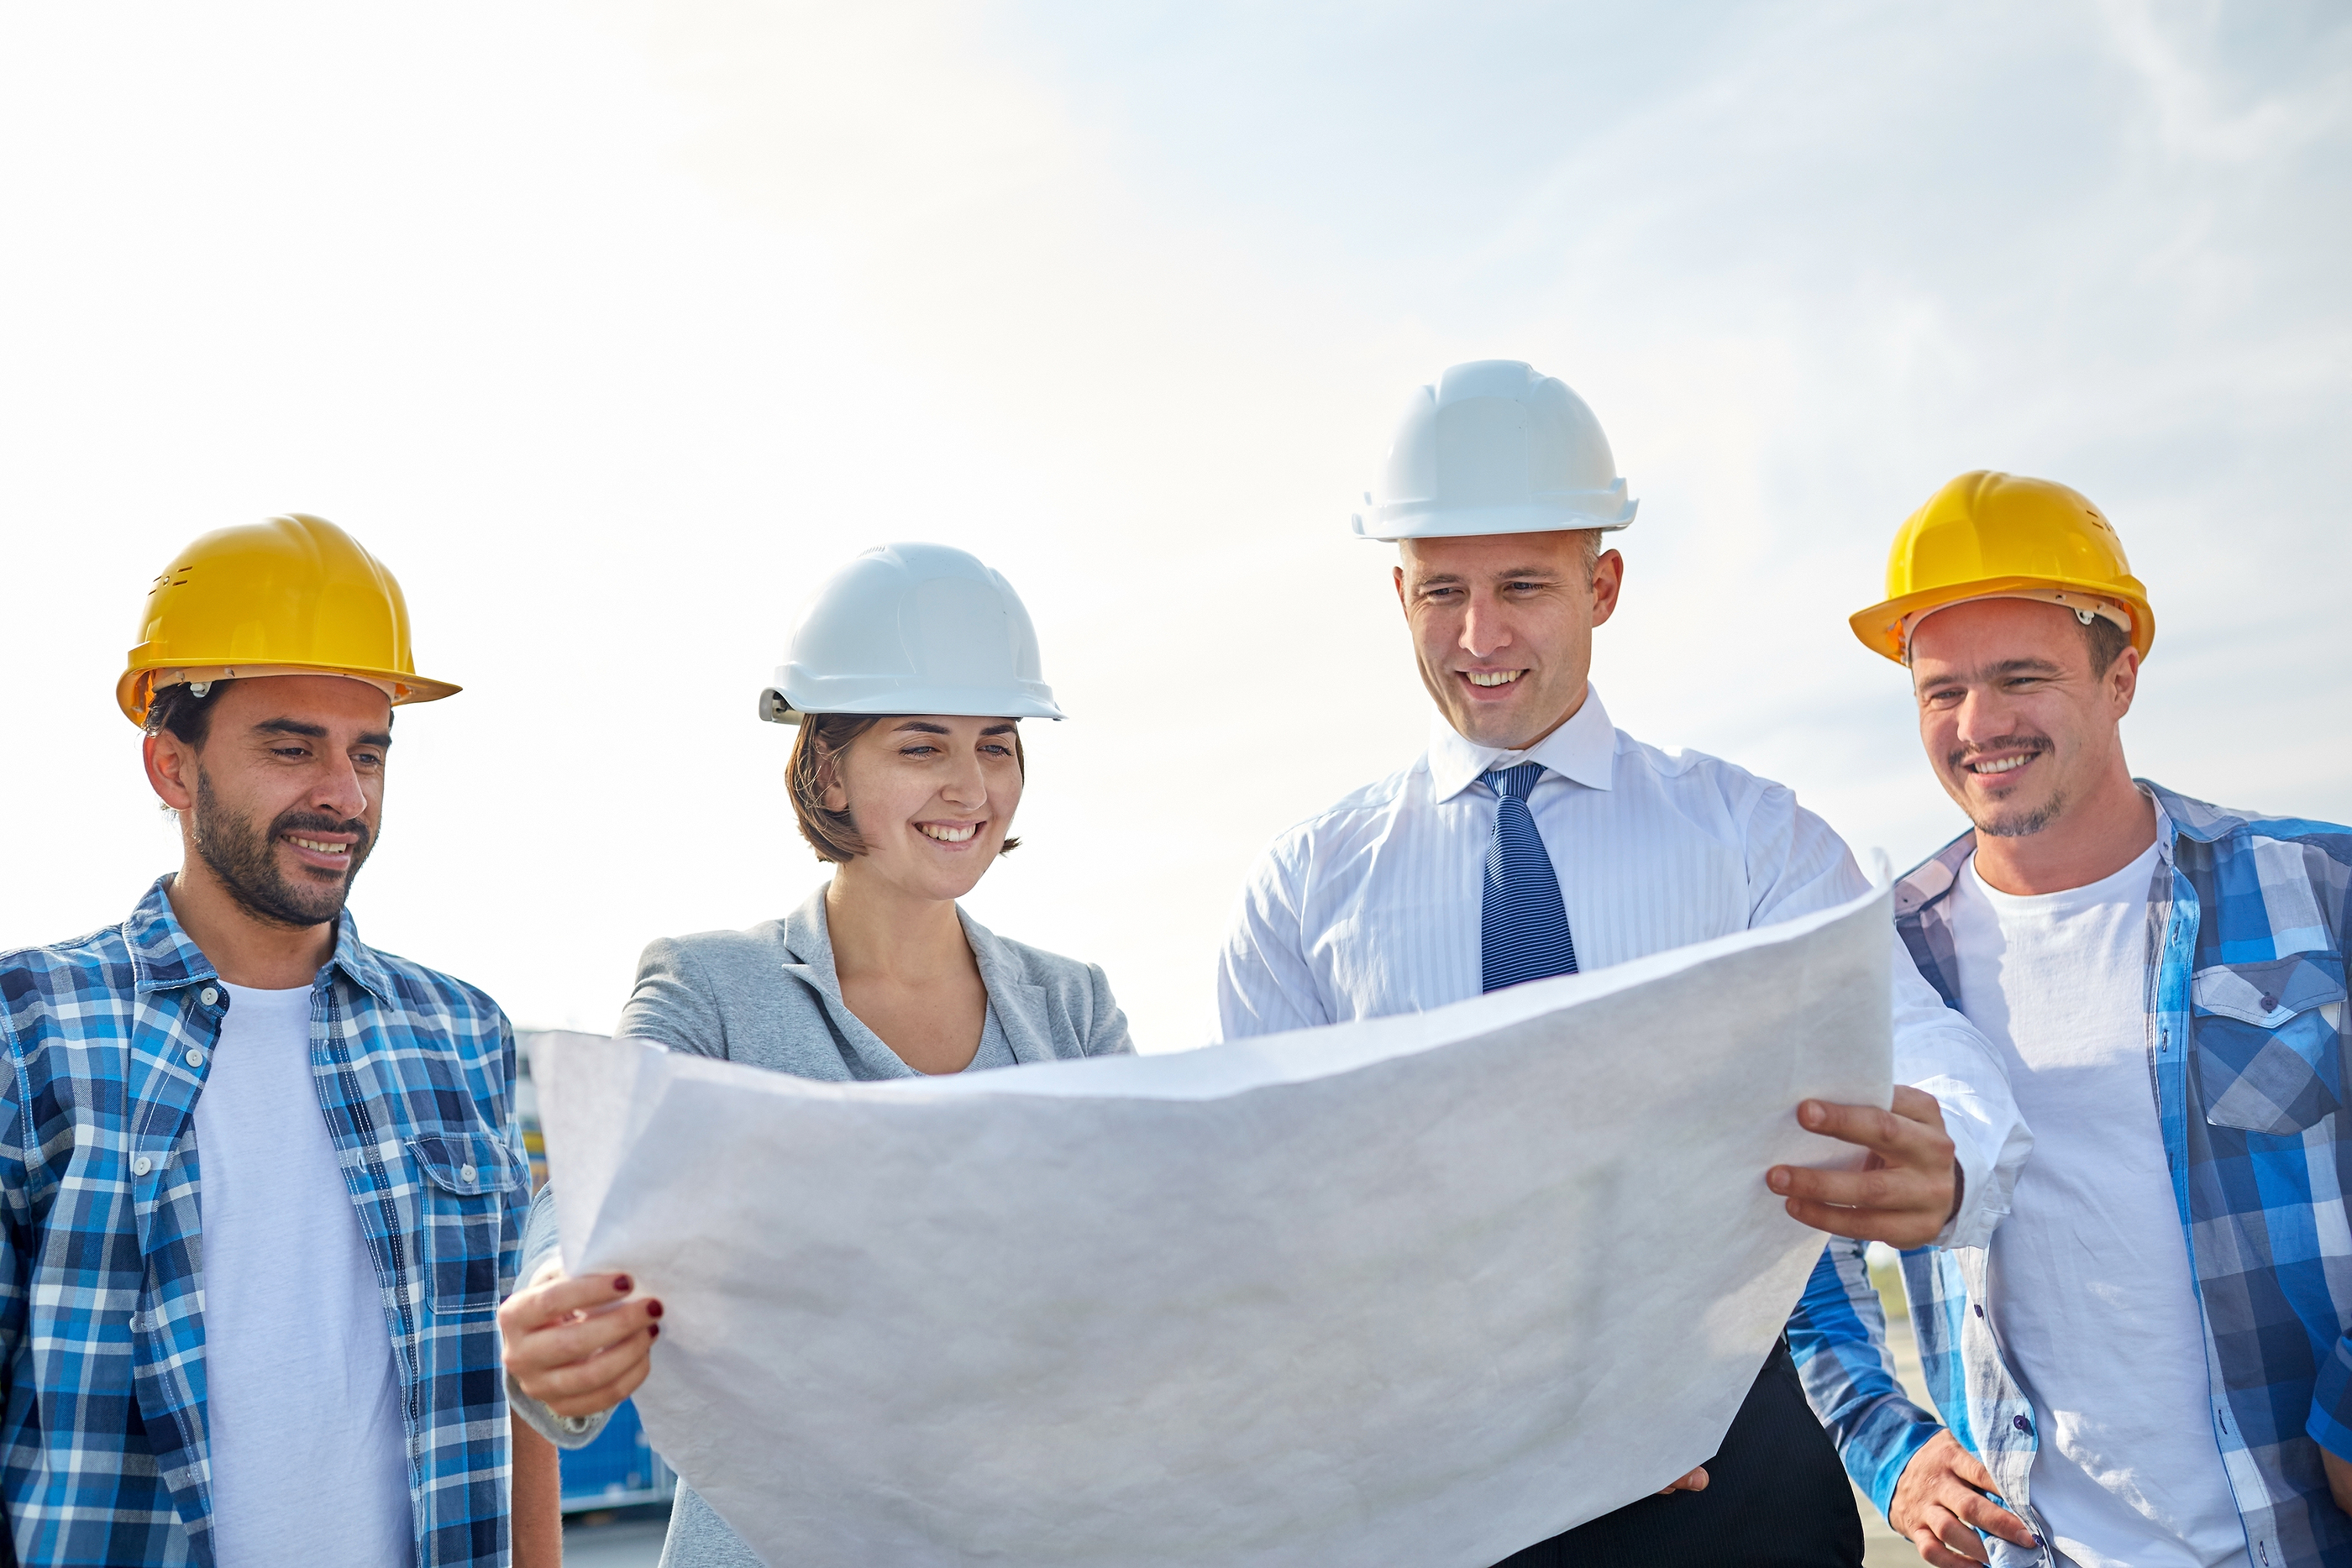 business, building, teamwork and people concept - group of builders and architects in hardhats with